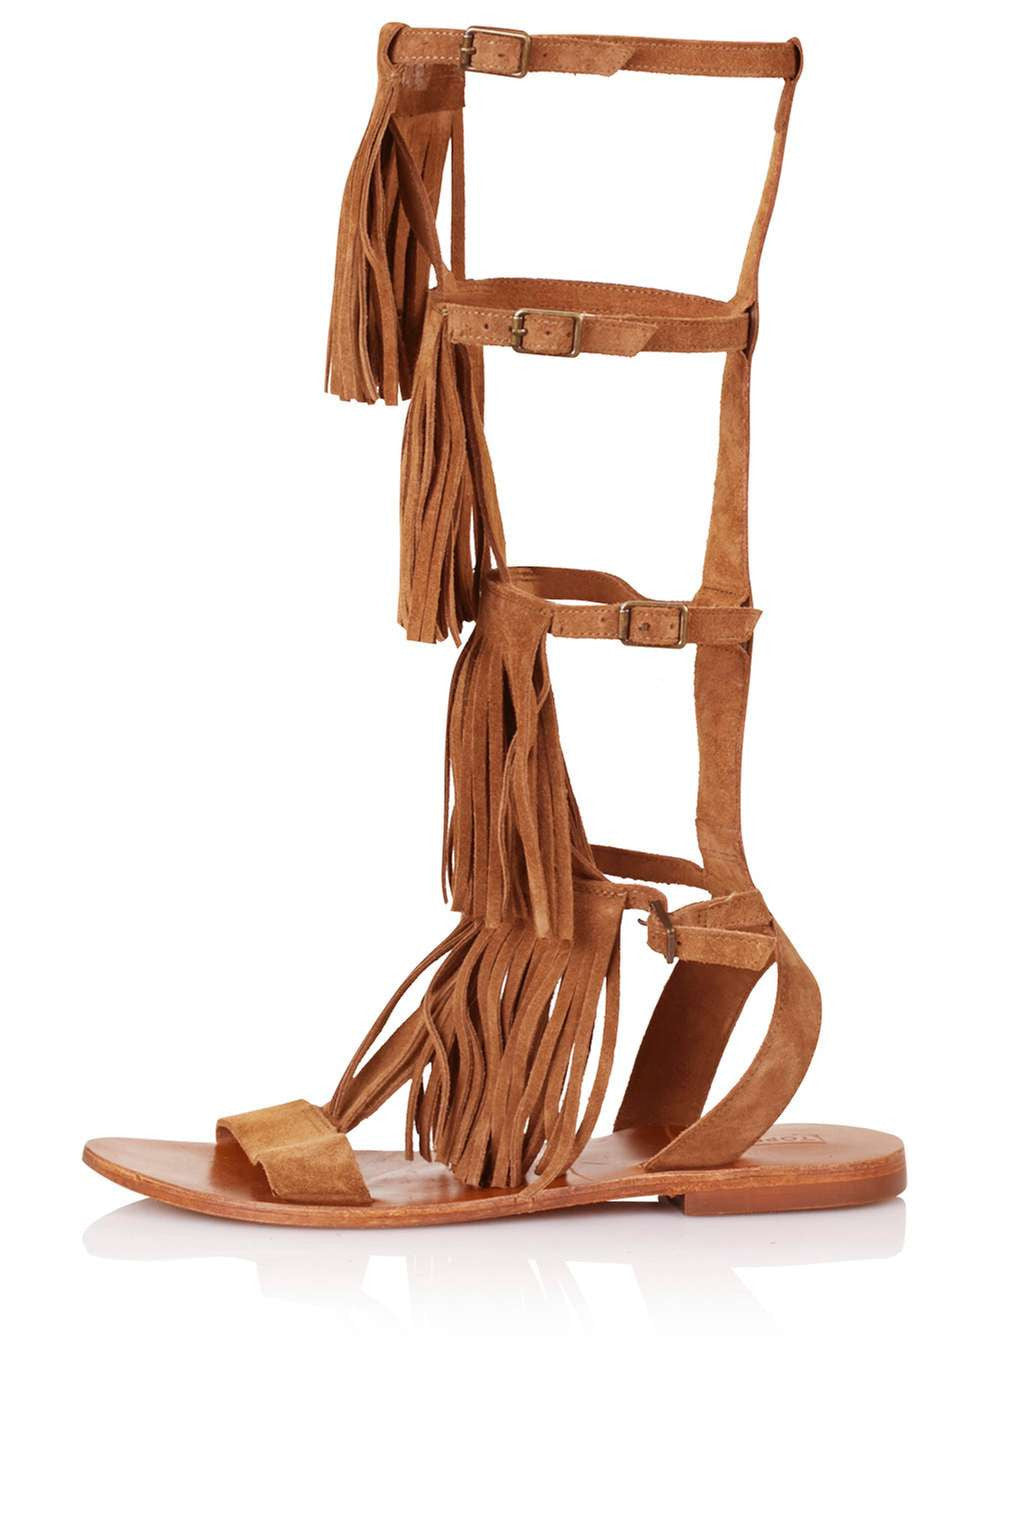 TopShop FAIRFAX Gladiator Fringe Sandals